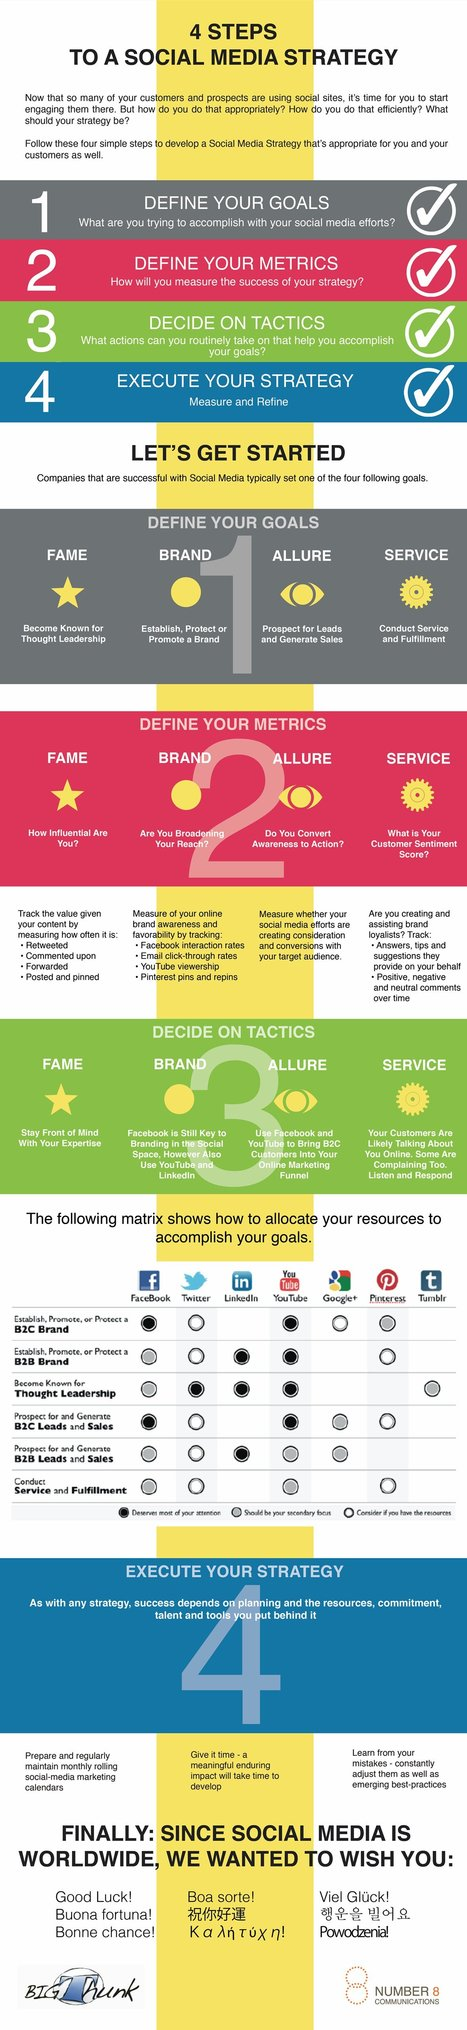 Infographic: The 4 Steps to Social Media Marketing - Marketing Technology Blog | Social Media & Digital Marketing [deutsch|english] | Scoop.it